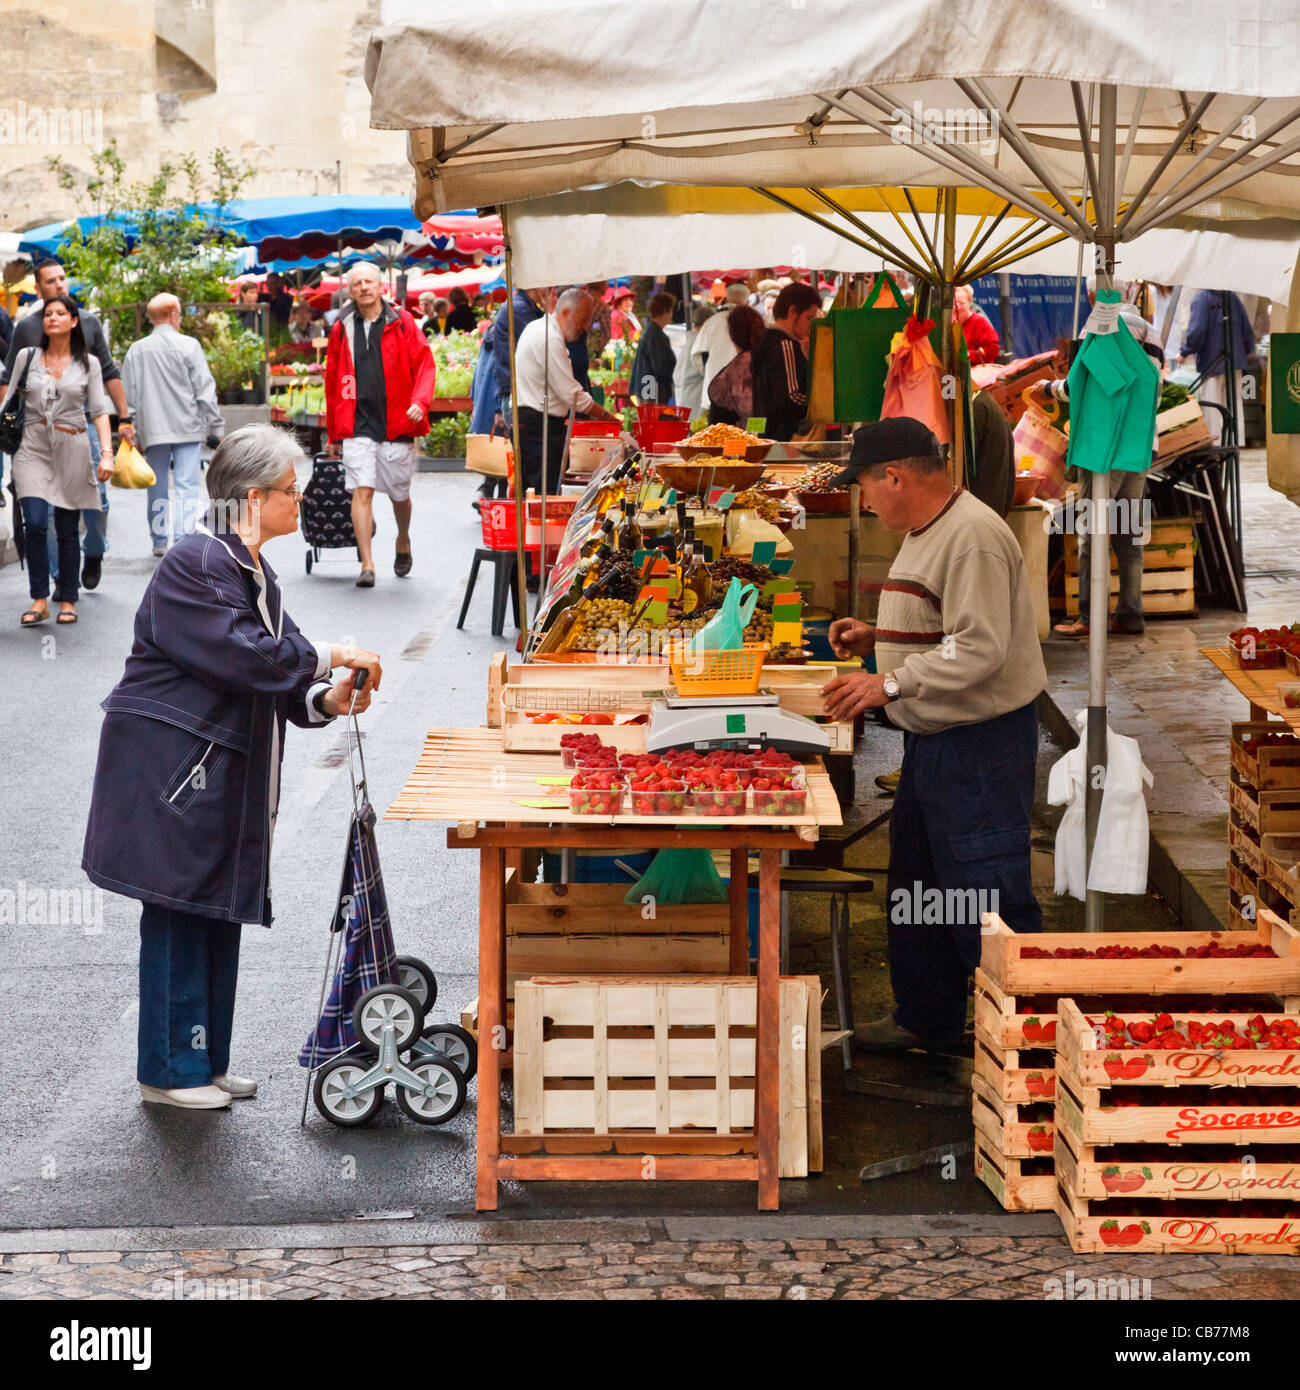 Market stall on the food market in Perigueux, Dordogne, France - Stock Image